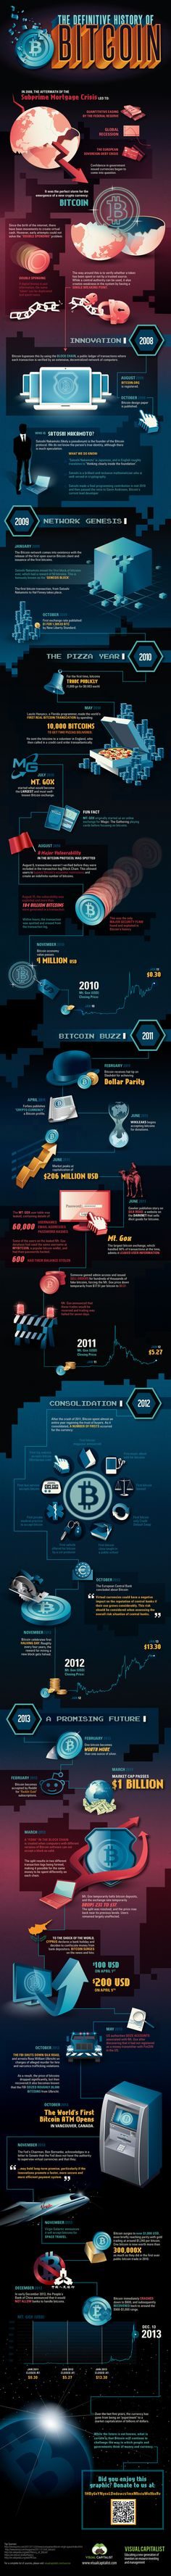 A Quick and Complete #History of #Bitcoin So You're Not Totally Lost [ #Infographic ]